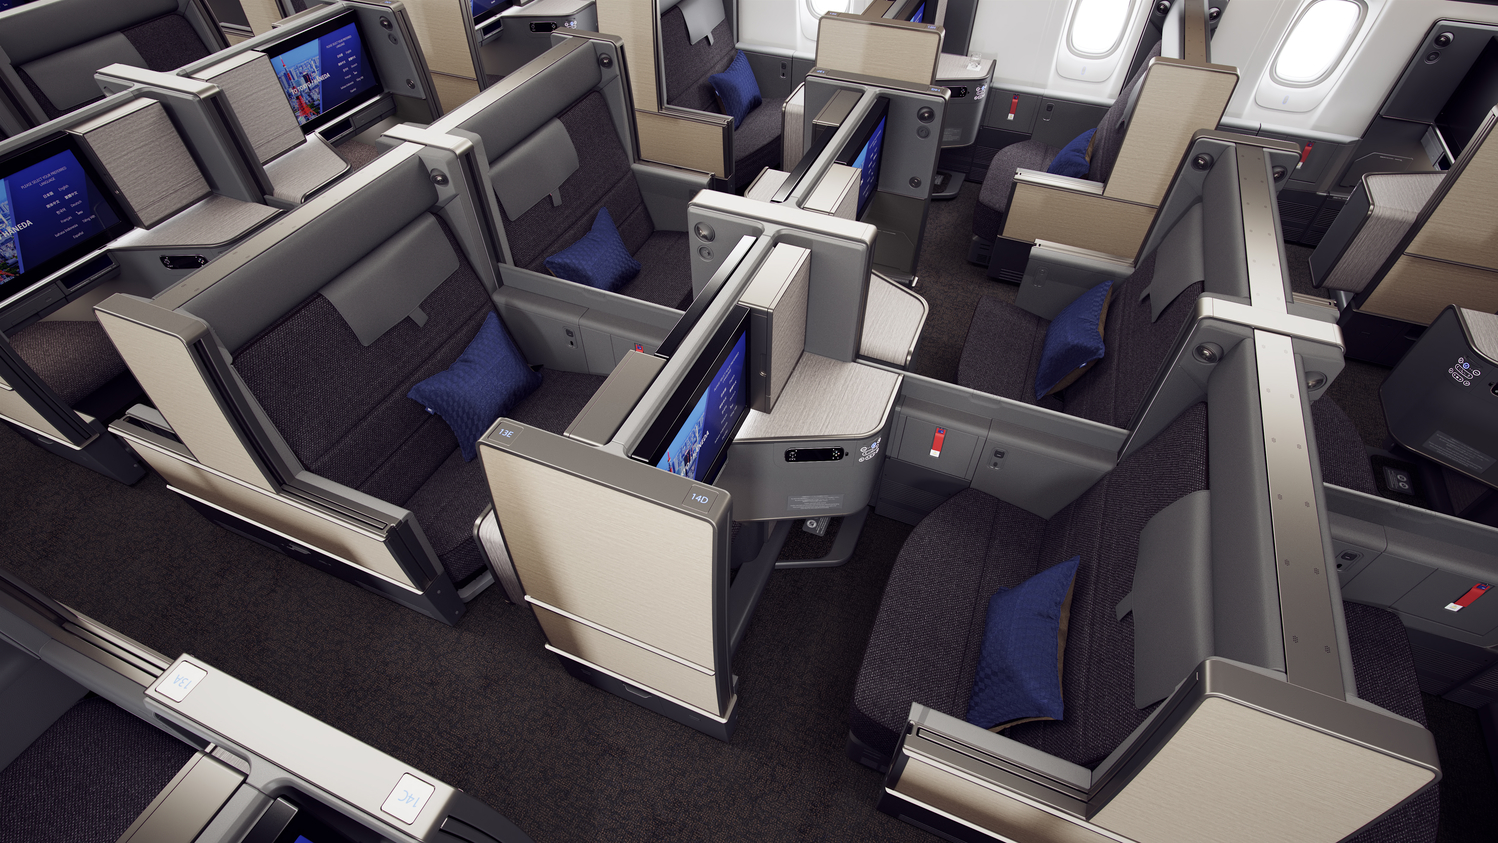 ANA新777-300 First Class / Business Suite Class 即刻睇!有啲似Qatar個Q Suite啊!